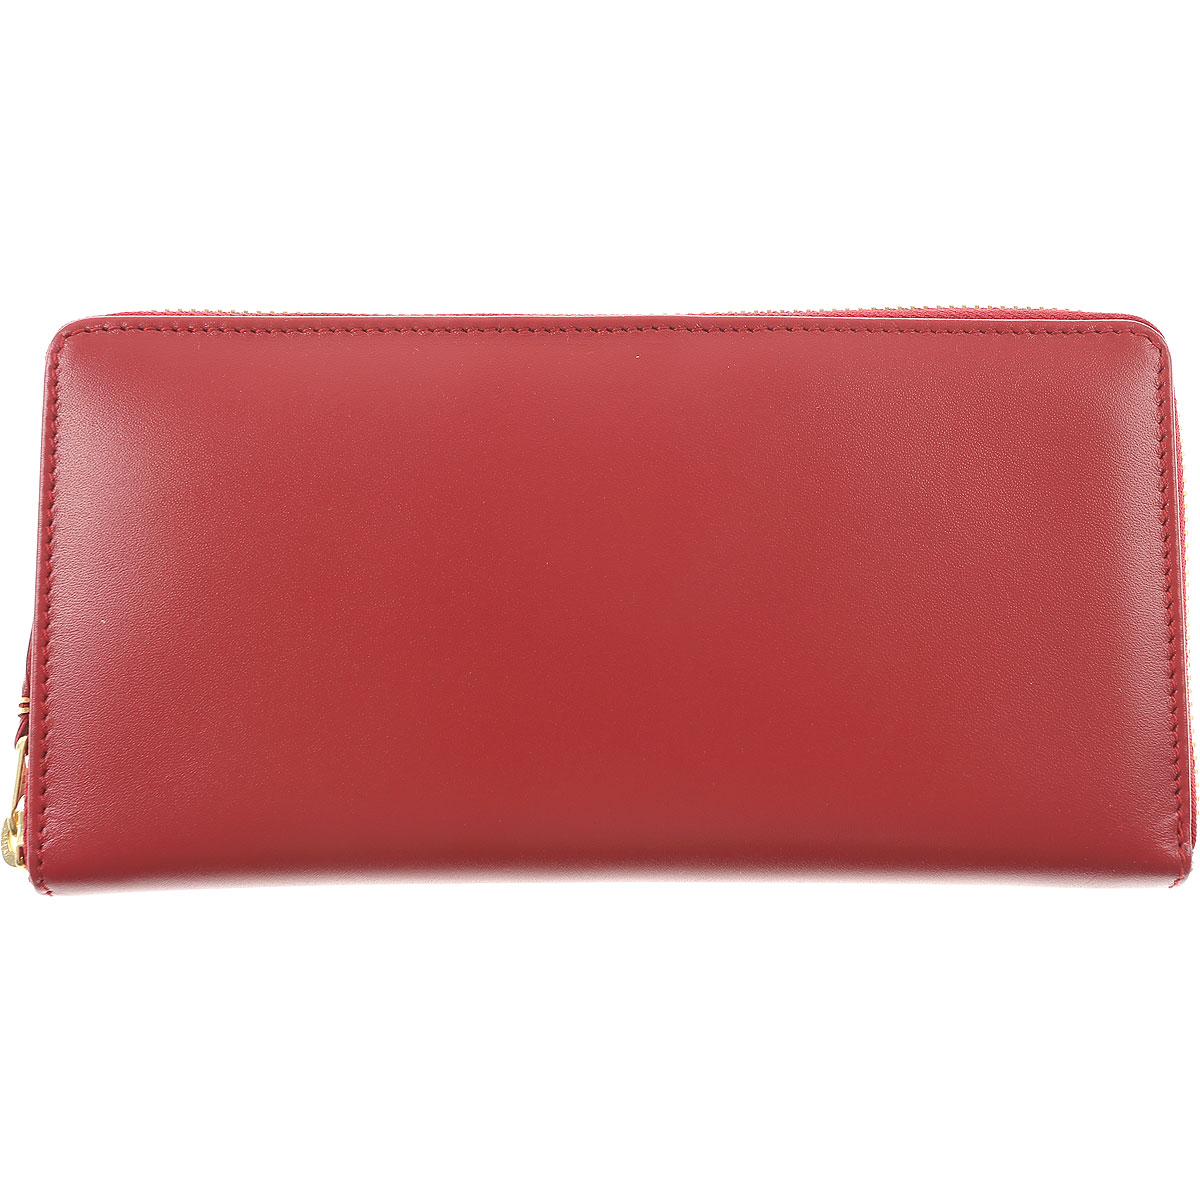 Comme des Garcons Wallet for Women Red USA - GOOFASH